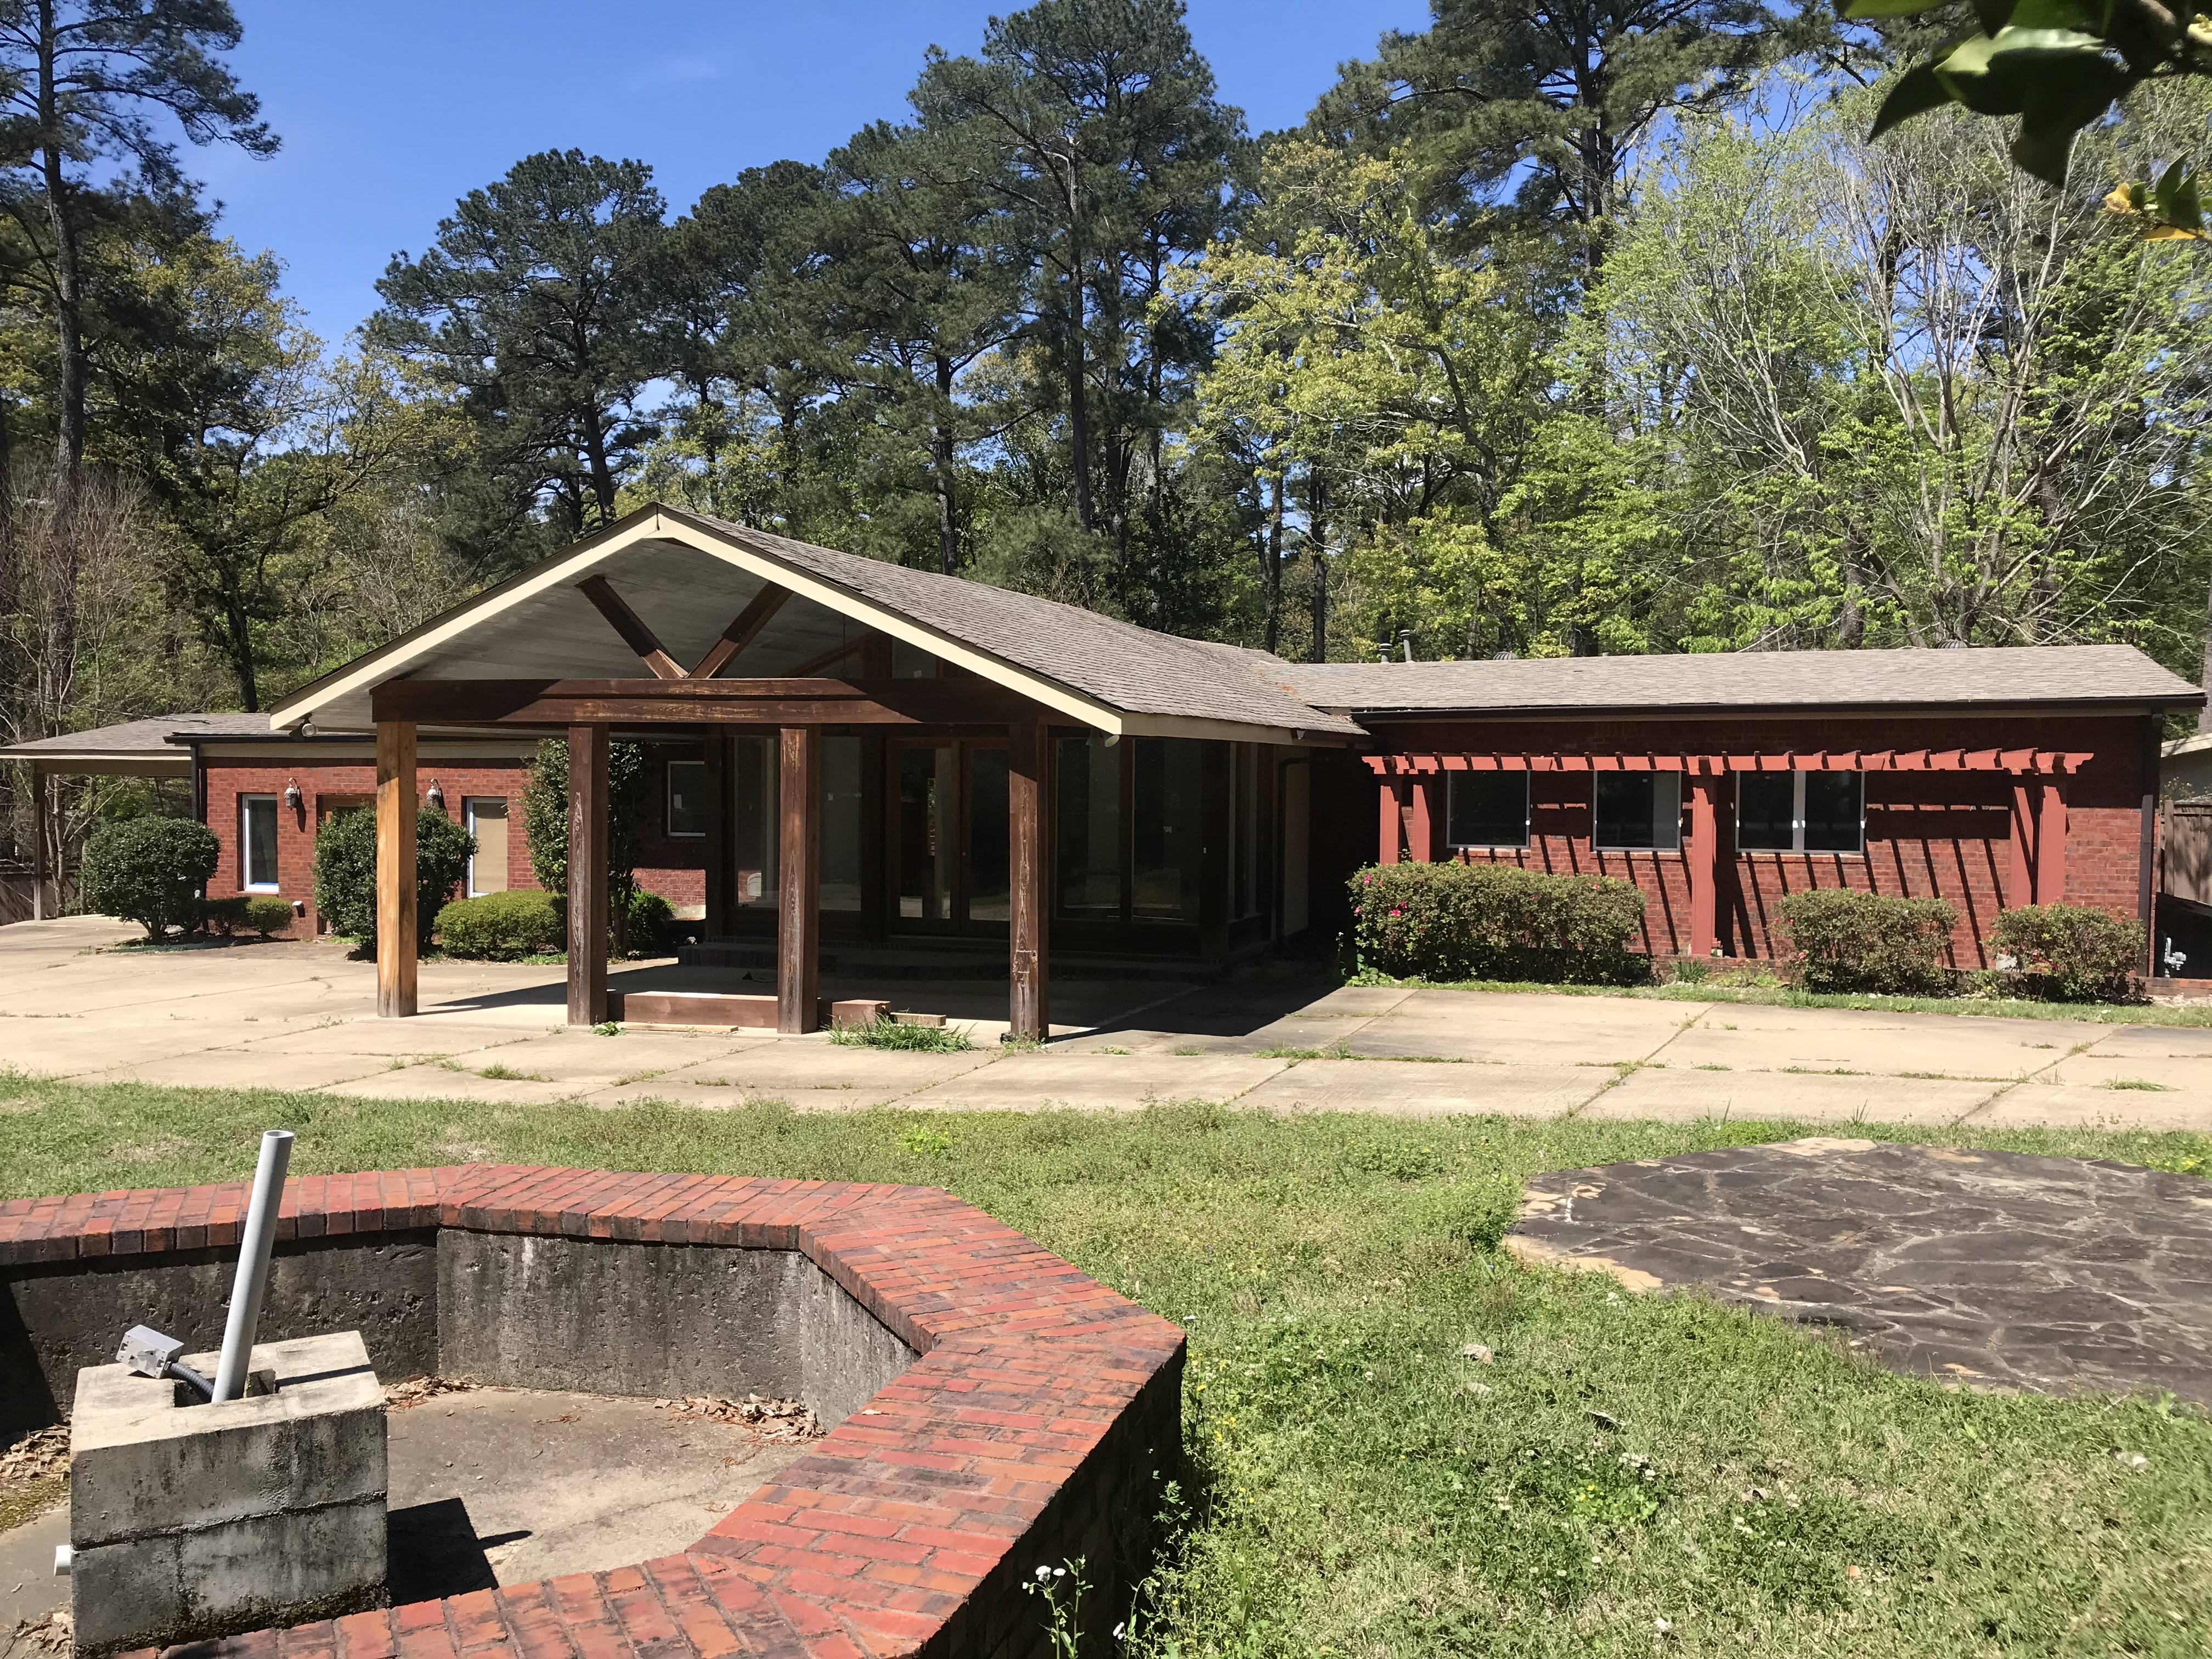 Ranch house in Mississippi needing curb appeal